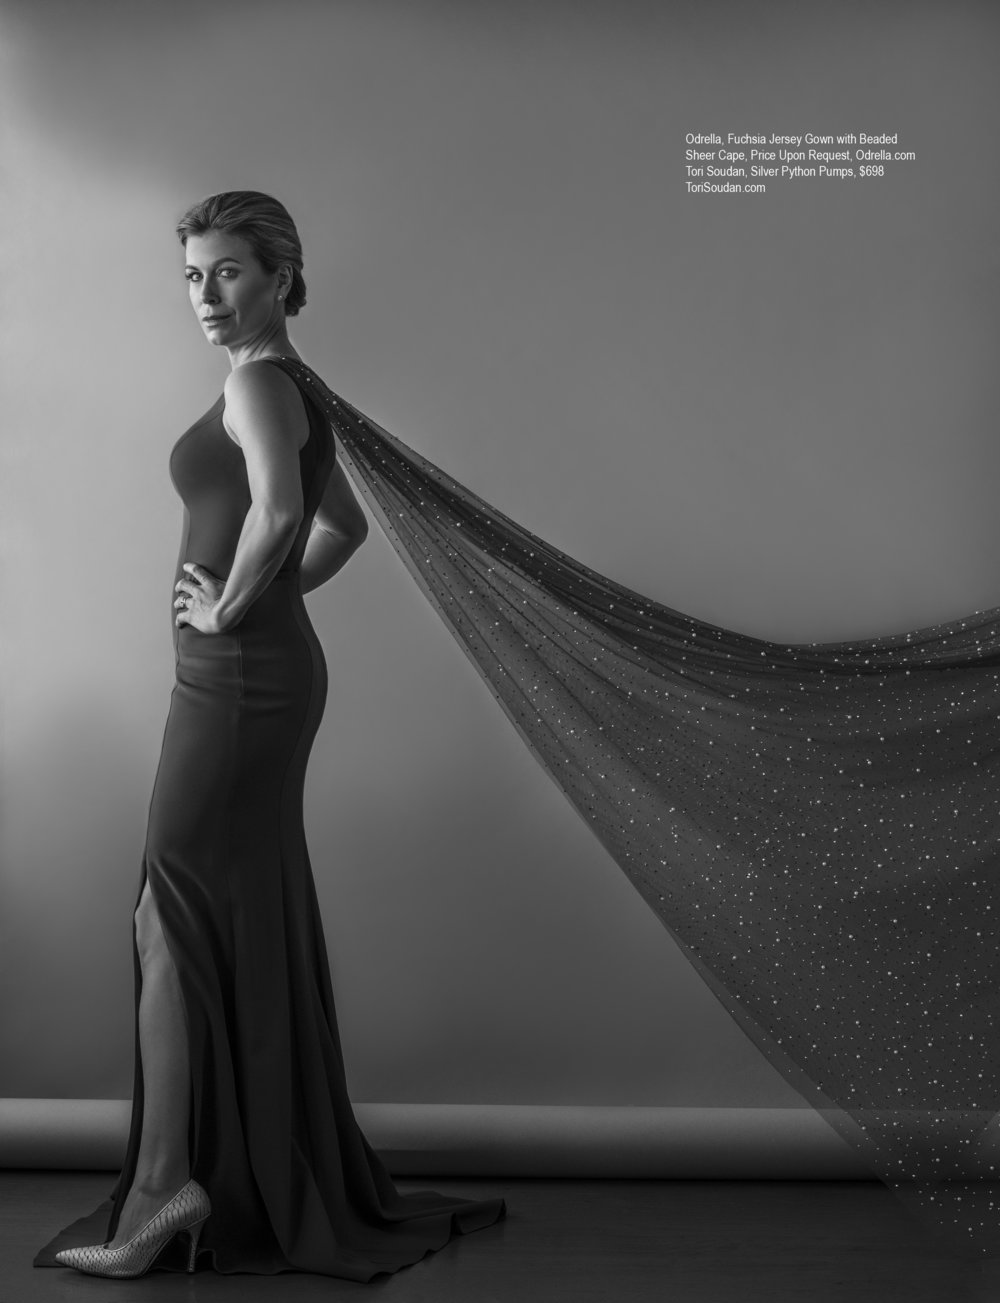 Sonya Walger in Regard Magazine